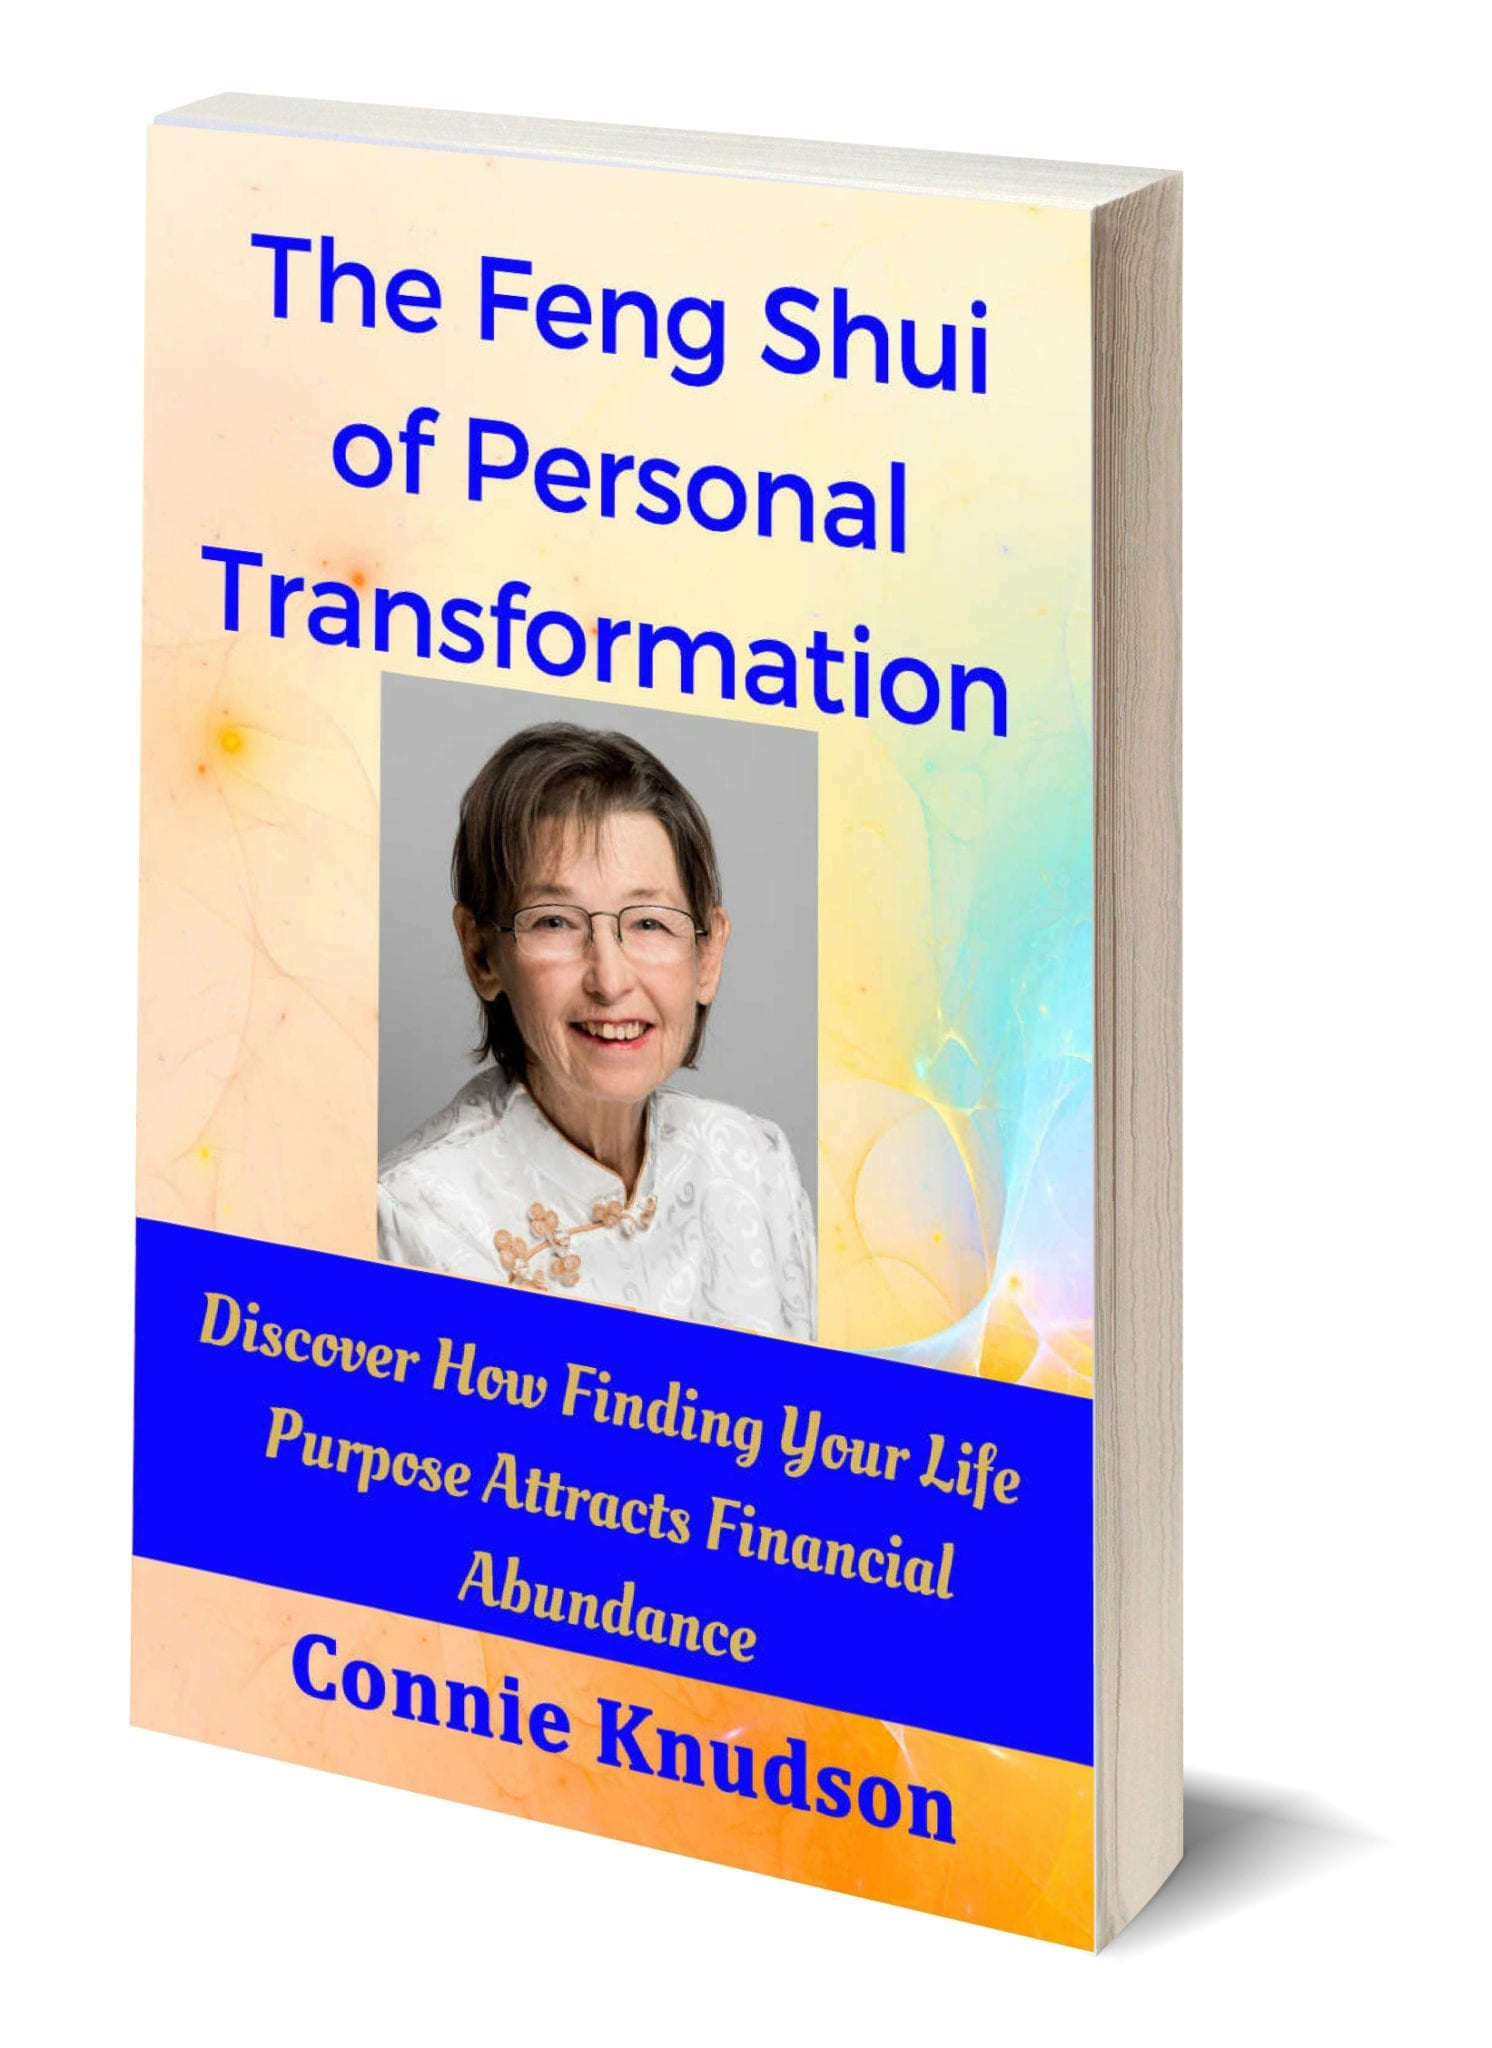 The Feng Shui of Personal Transformation